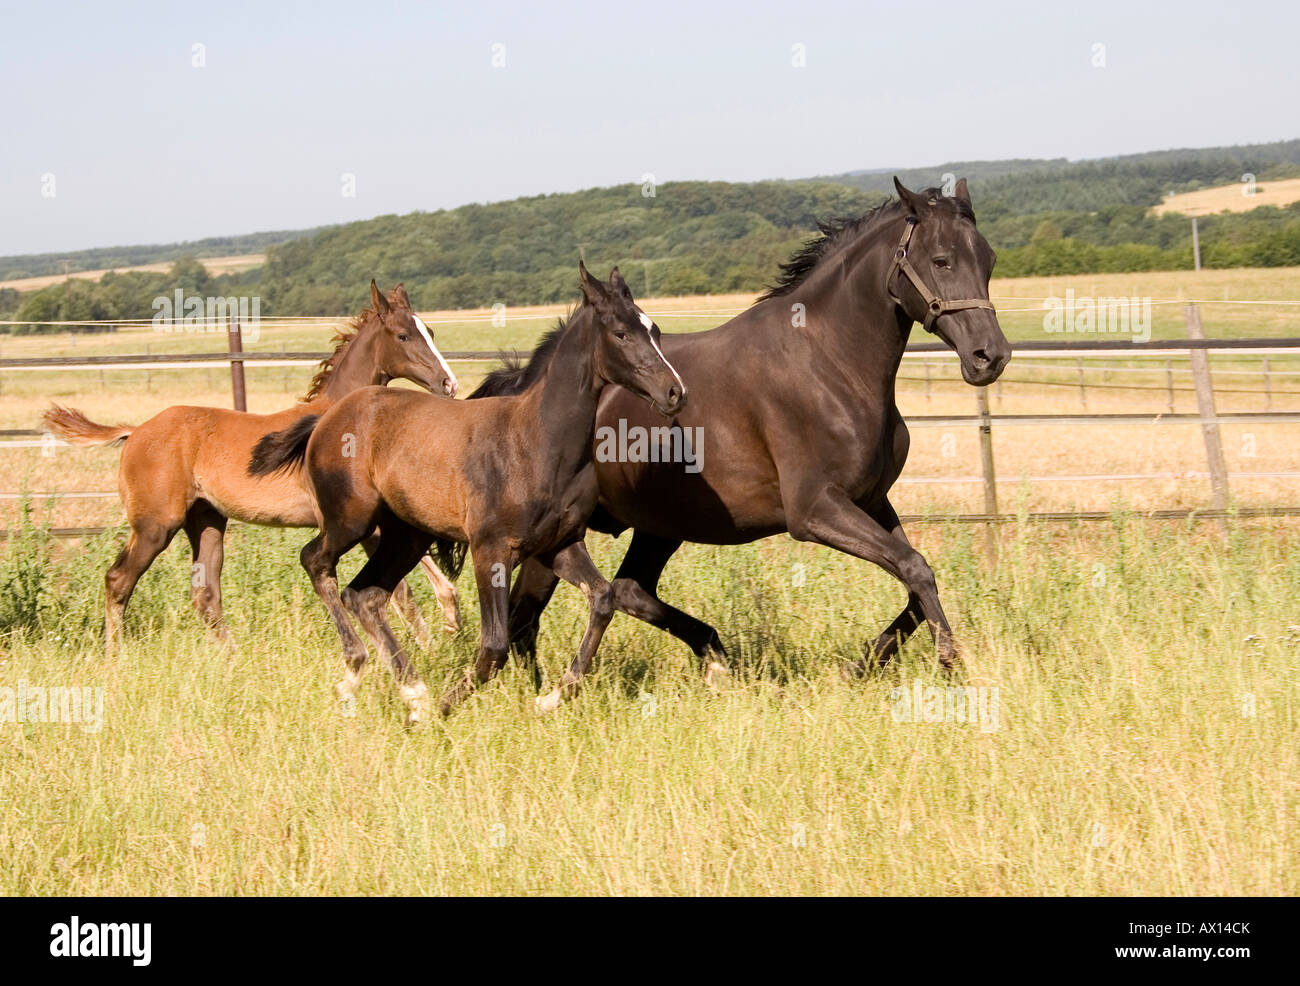 Black mare and foal galopping through meadow, Vulkaneifel, Germany, Europe - Stock Image